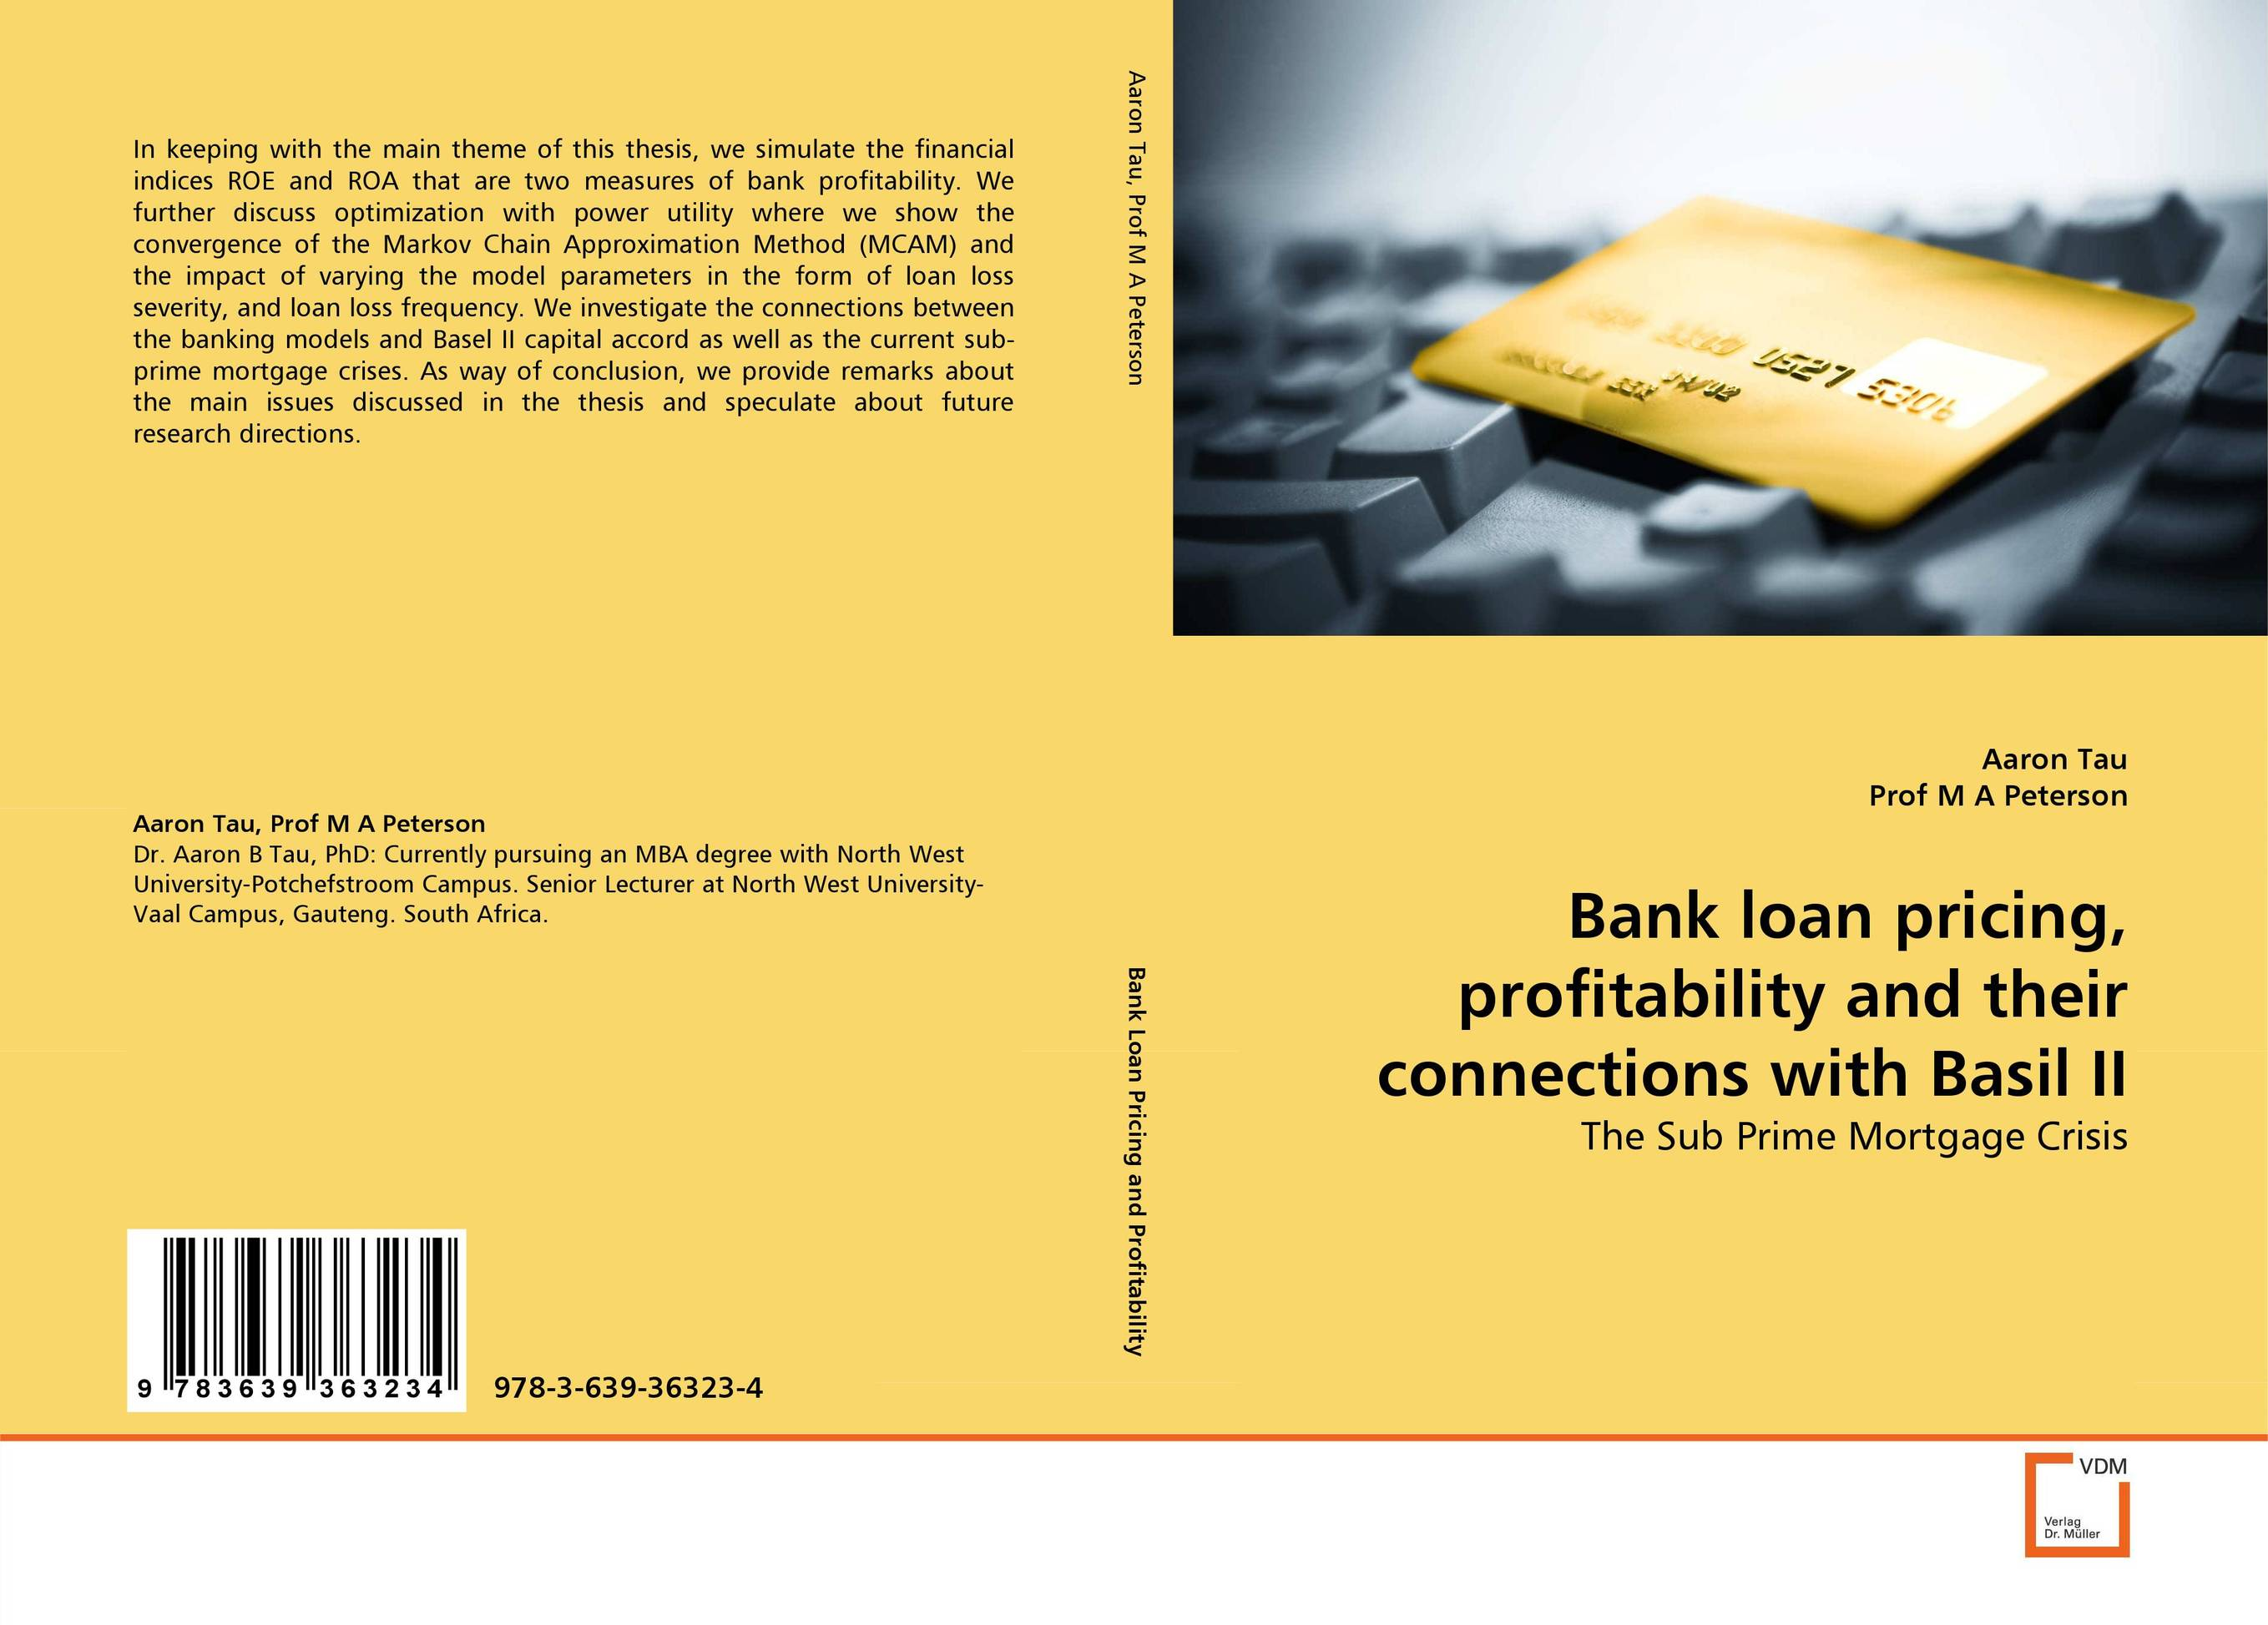 Bank loan pricing, profitability and their connections with Basil II muhammad sajid saeed possible determinants of bank profitability in the united kingdom